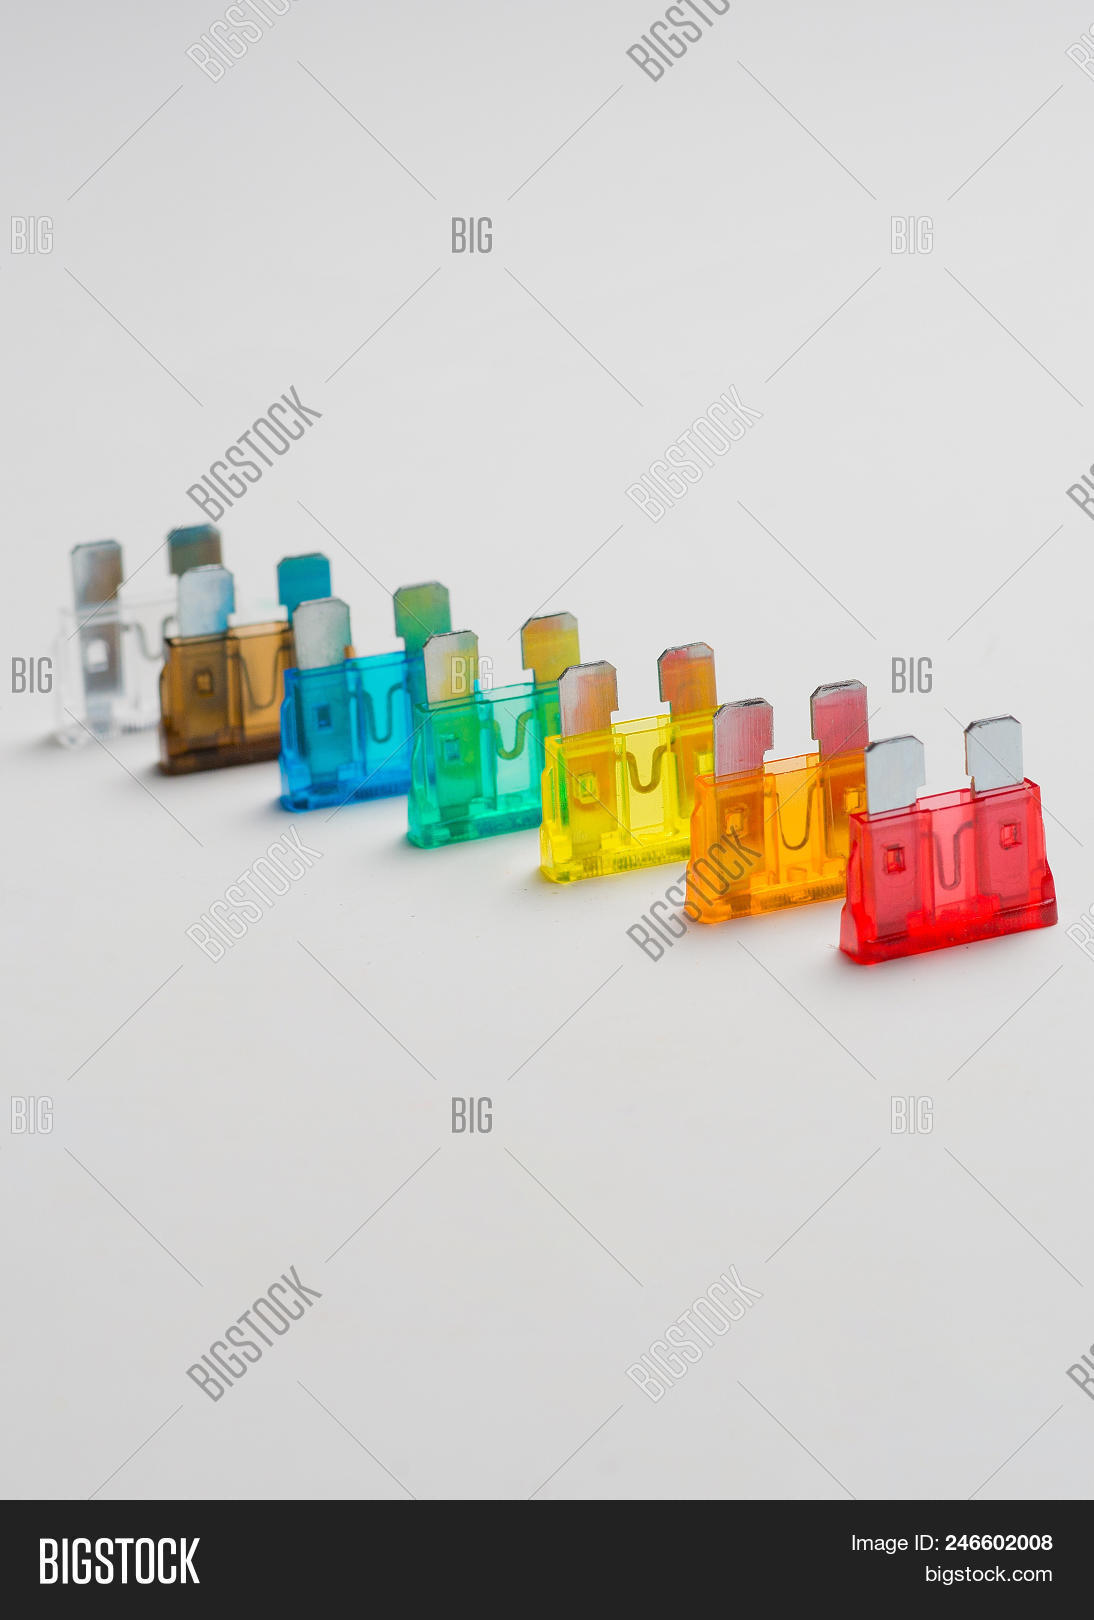 Car Fuse Colorful Image Photo Free Trial Bigstock Glass Box And Electrical Fuses Automotive Or Circuit Breakers Isolated On White Background